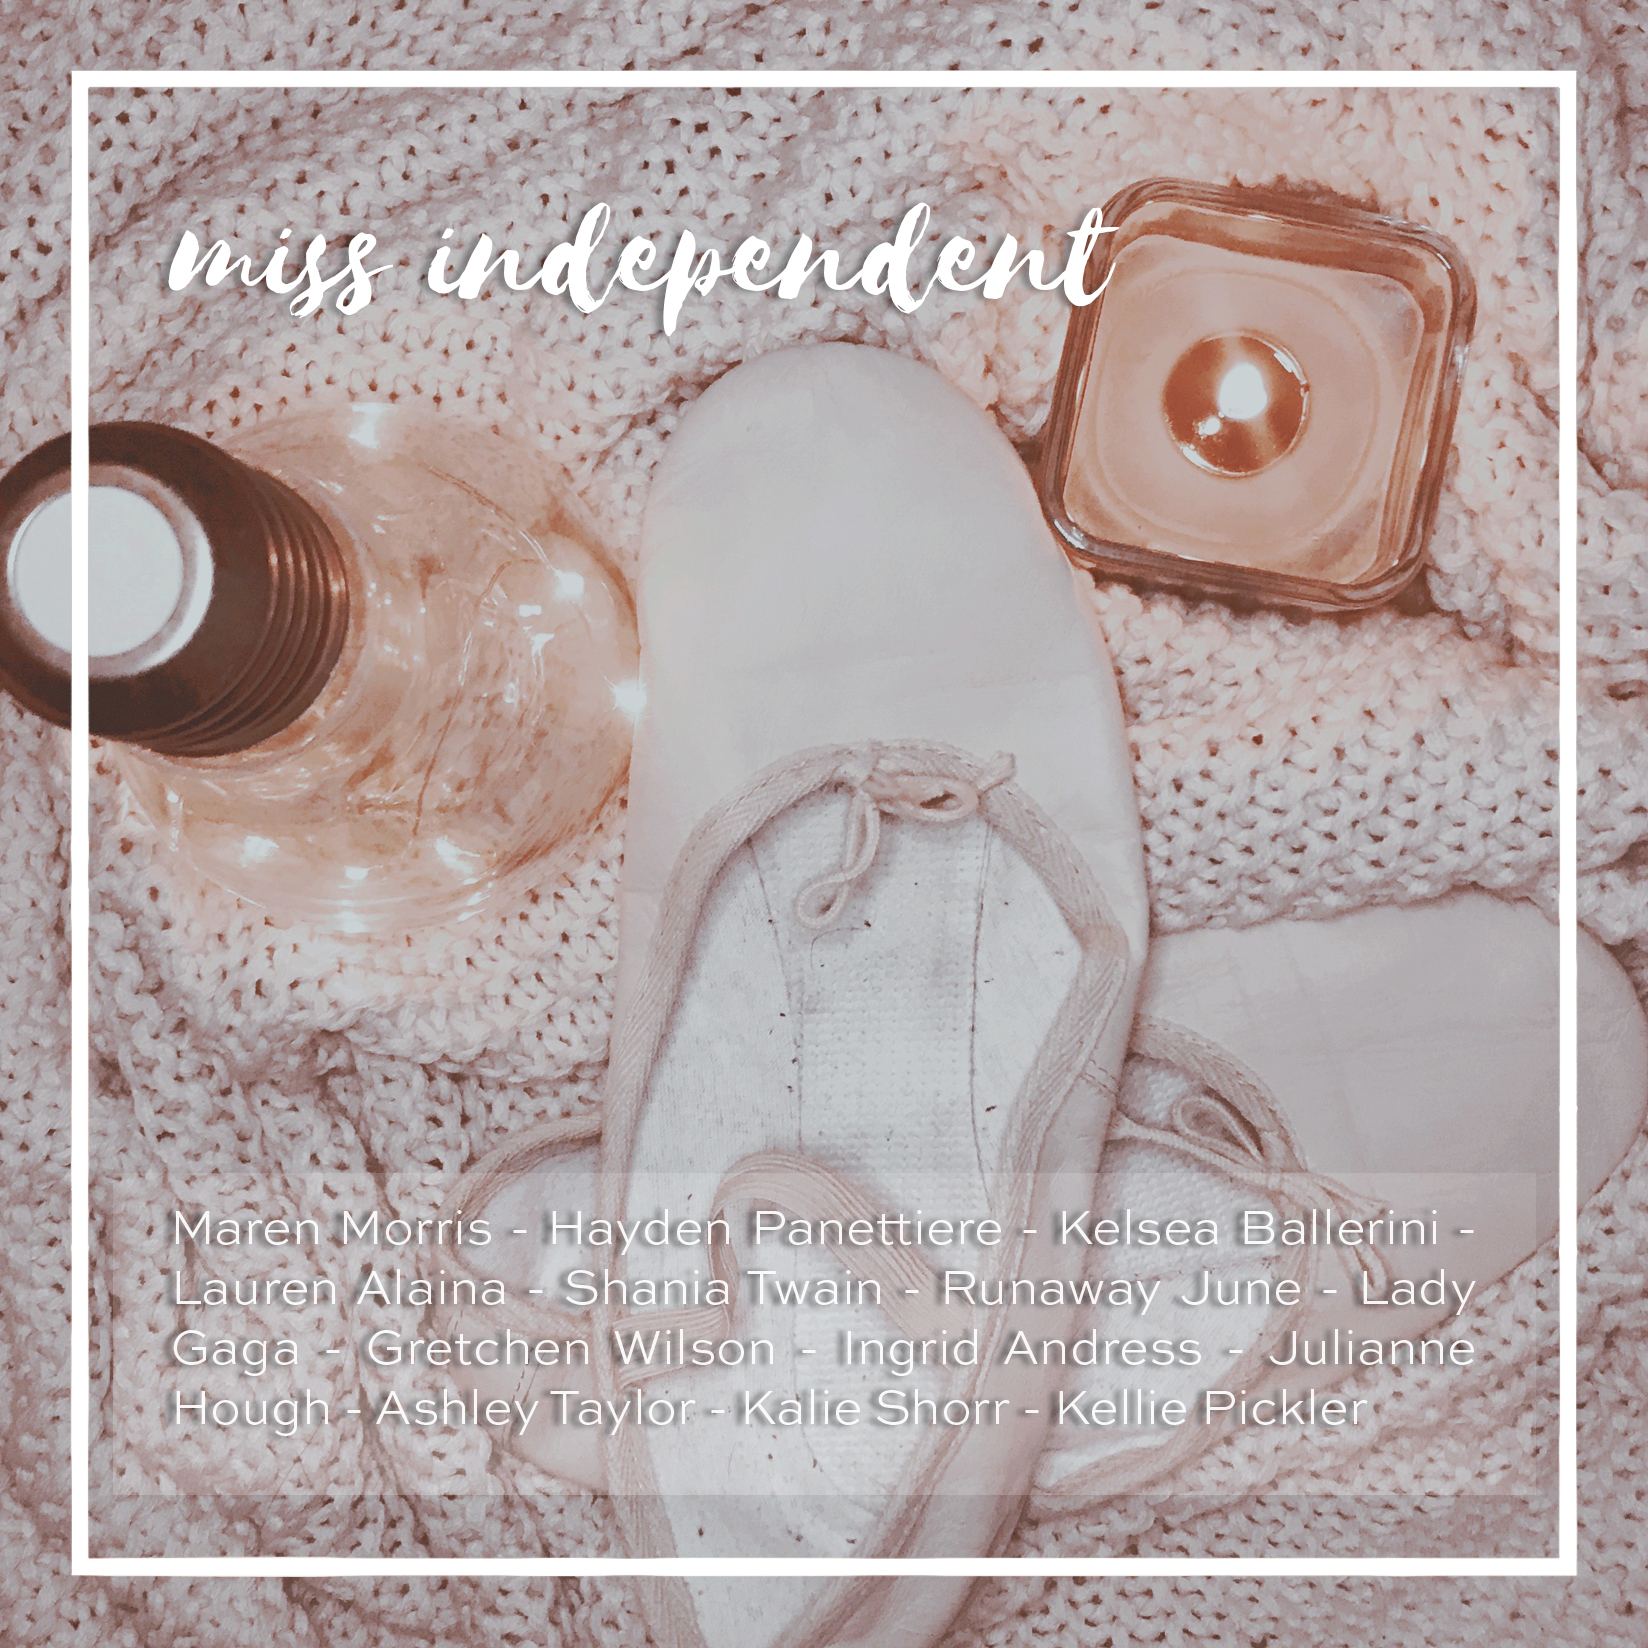 Weekly Playlist 25: miss independent